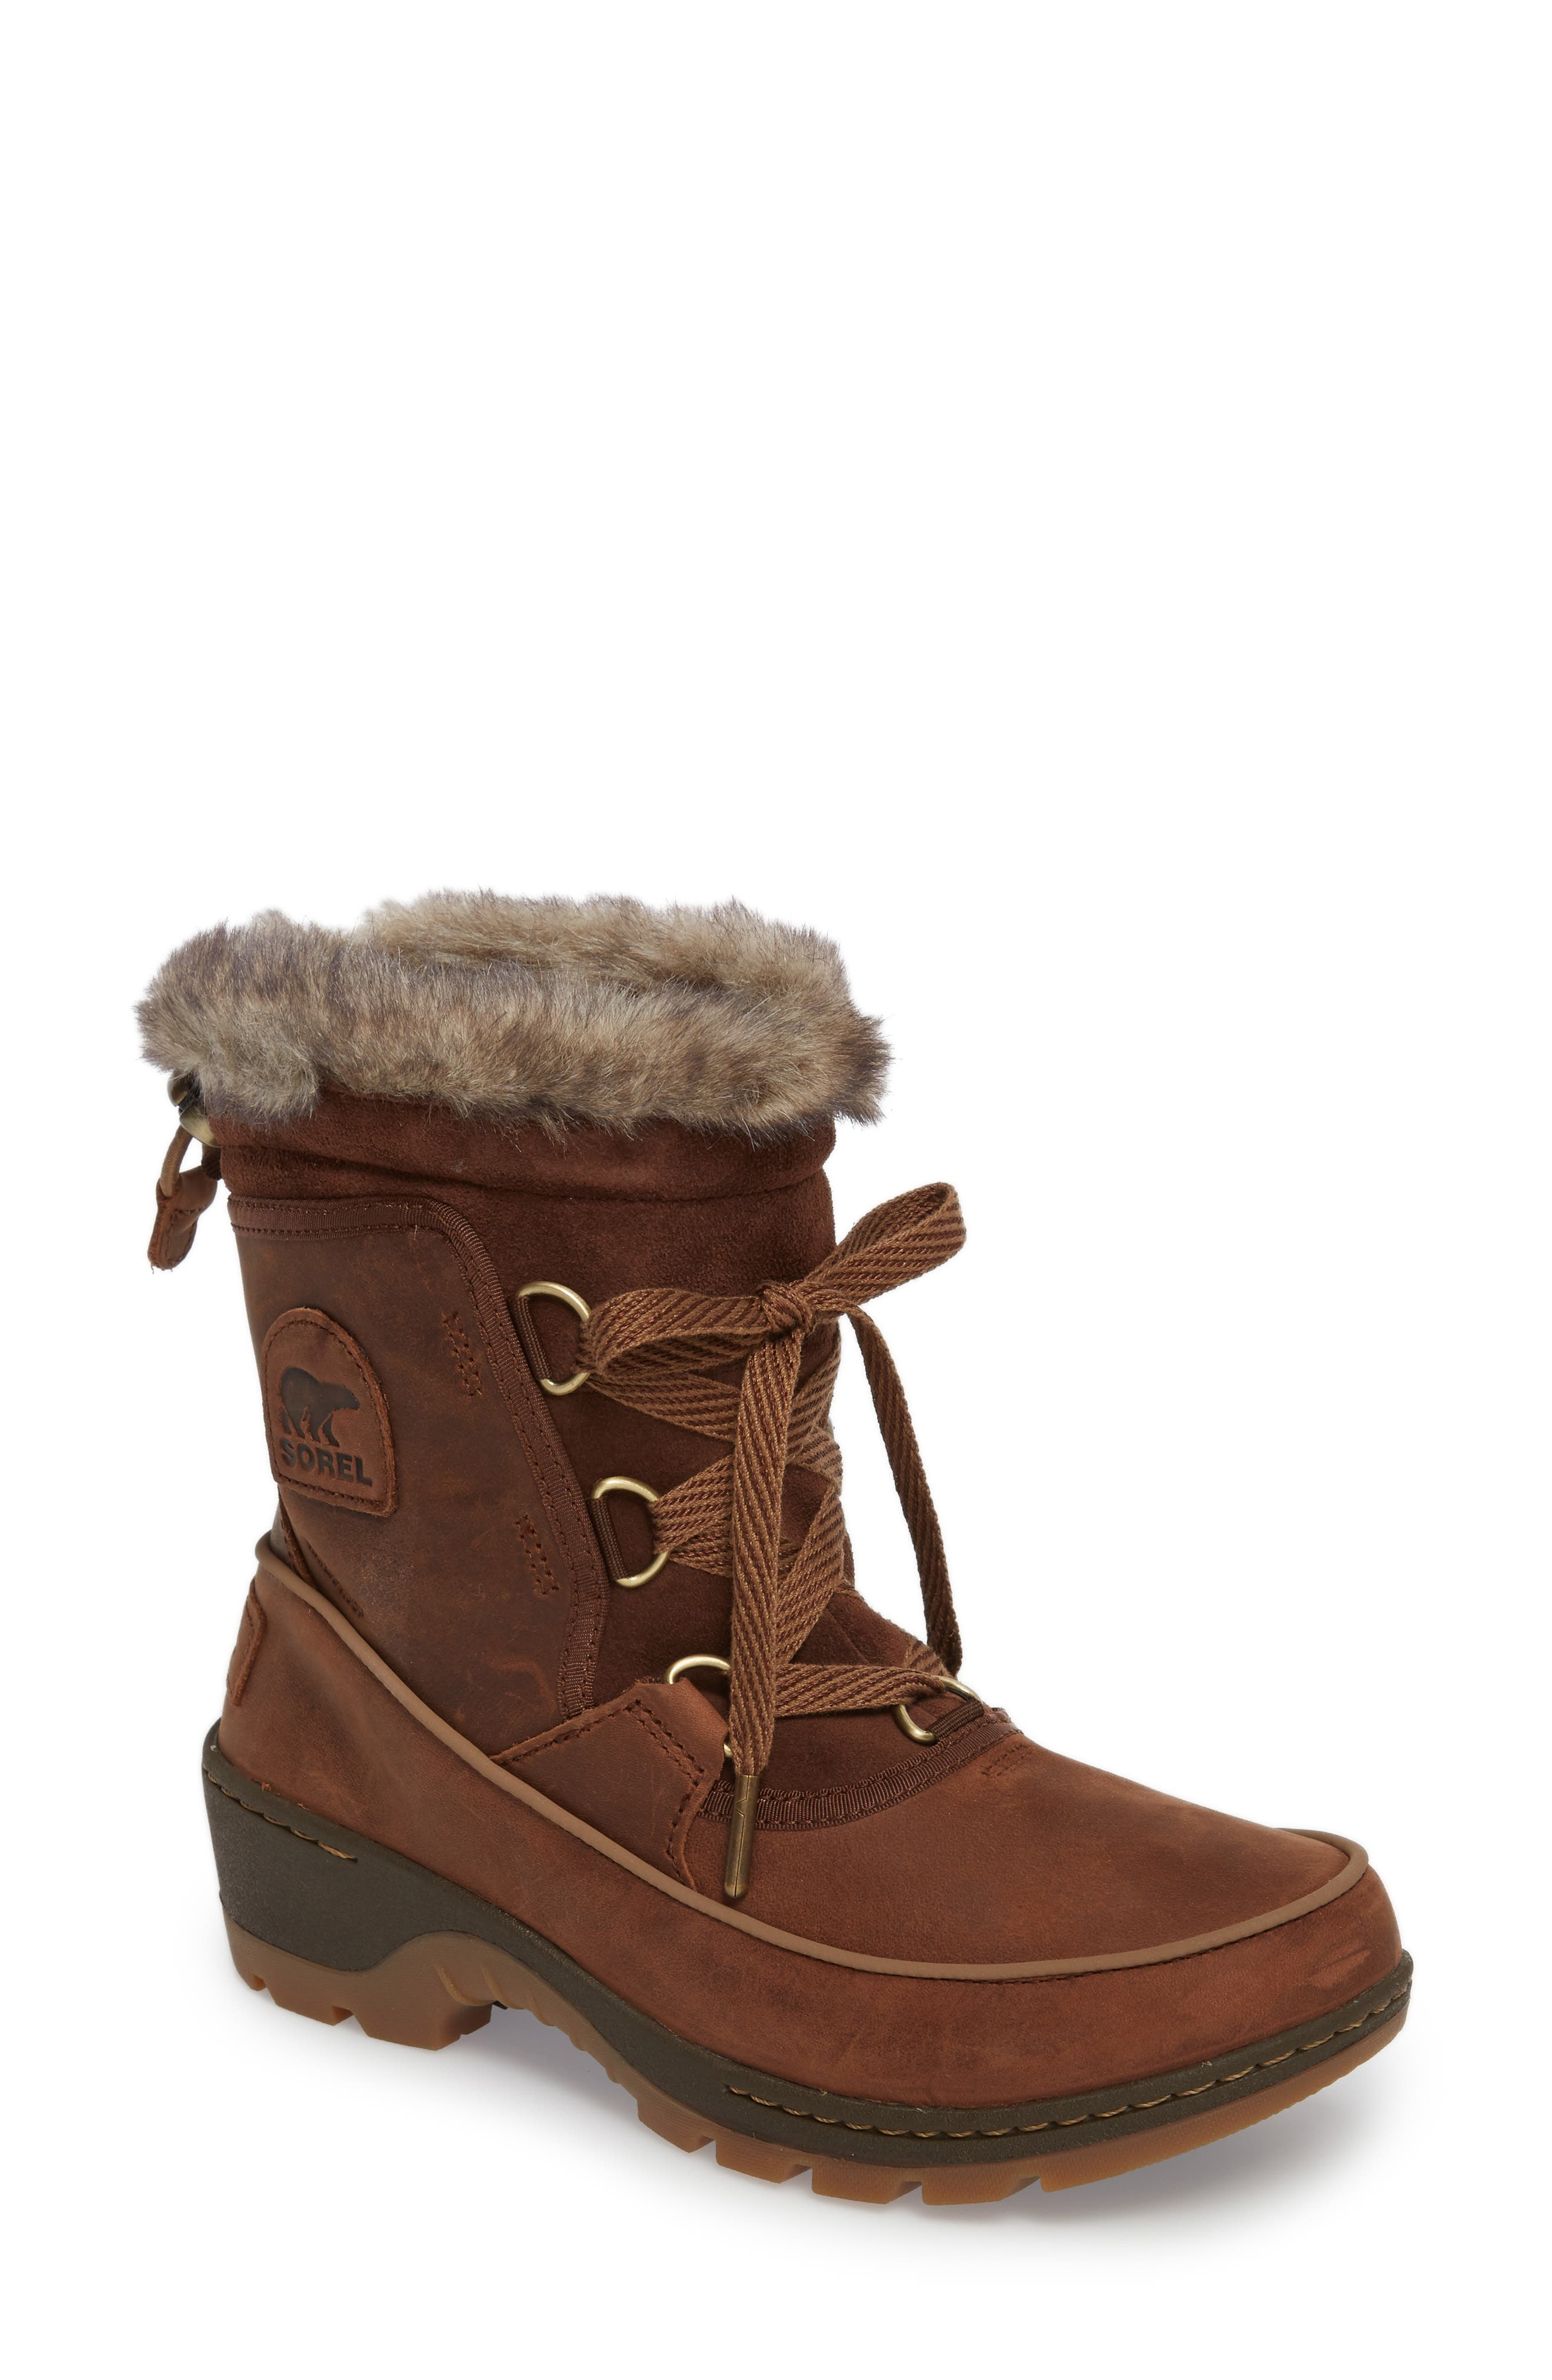 Tivoli II Insulated Winter Boot with Faux Fur Trim,                             Main thumbnail 2, color,